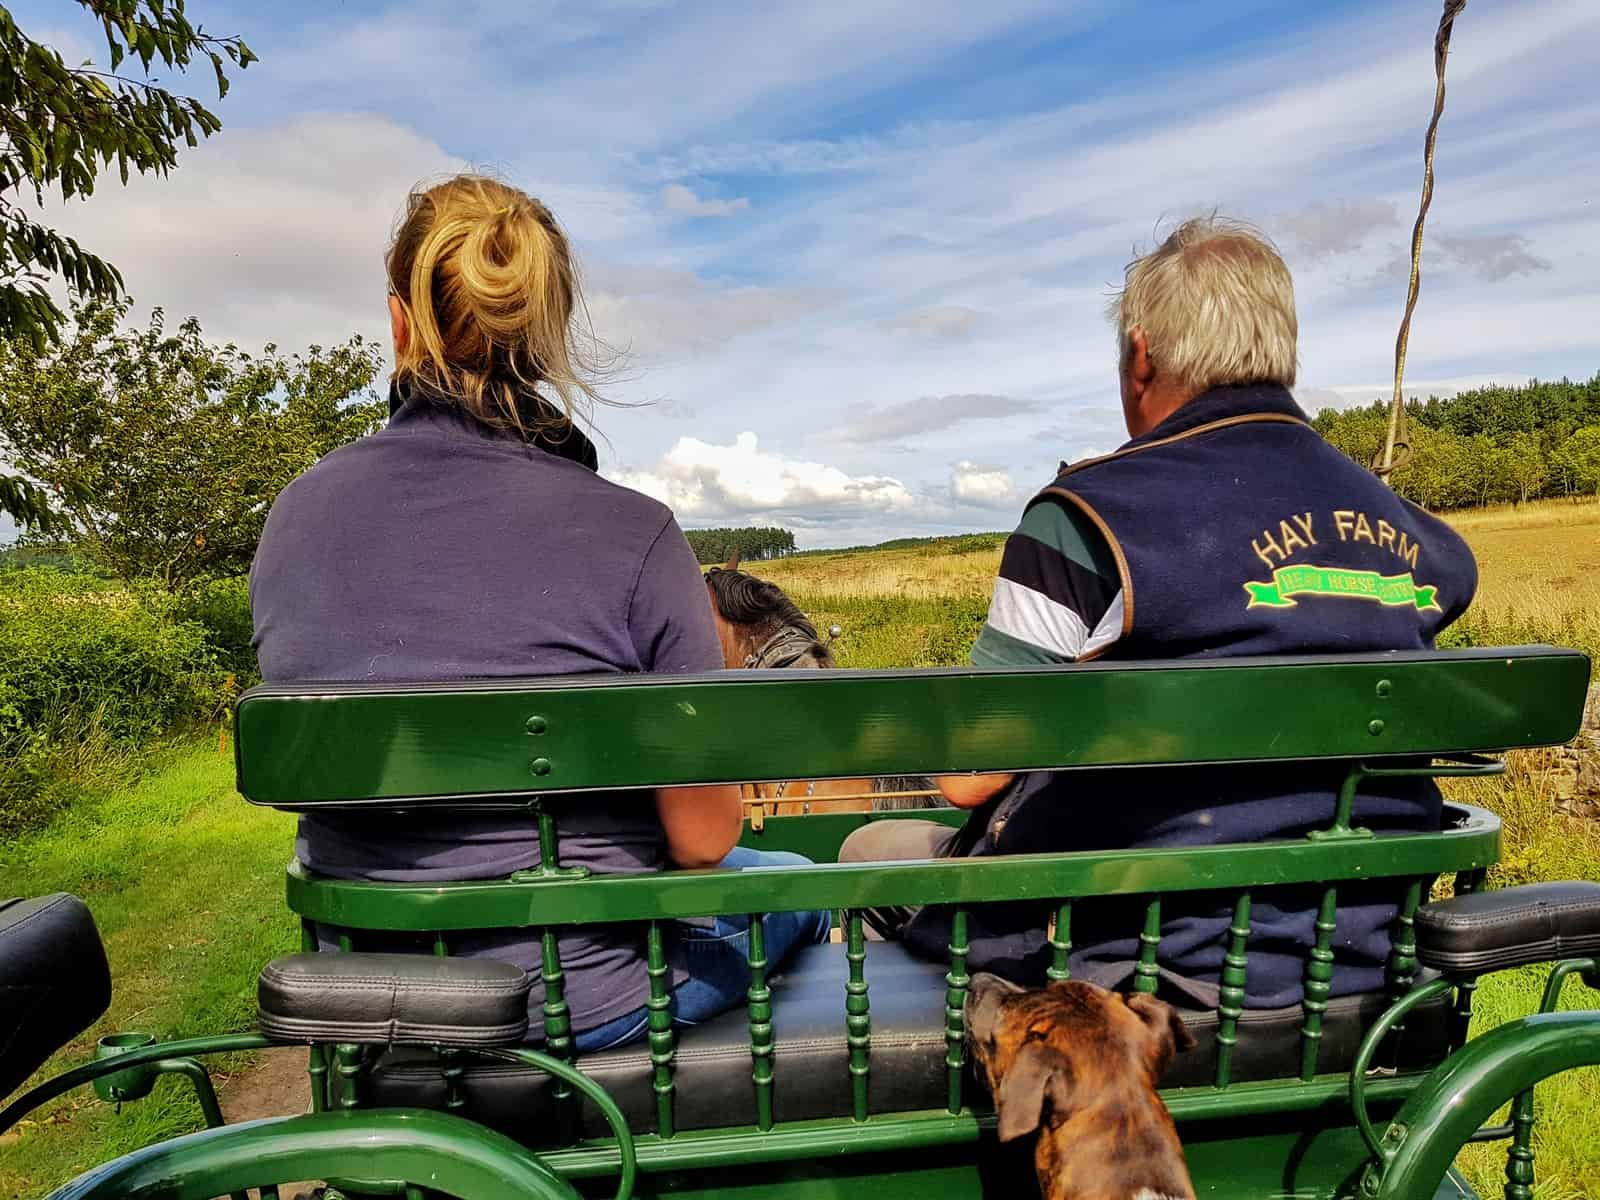 Ford and Etal Hay Farm dog on carriage ride